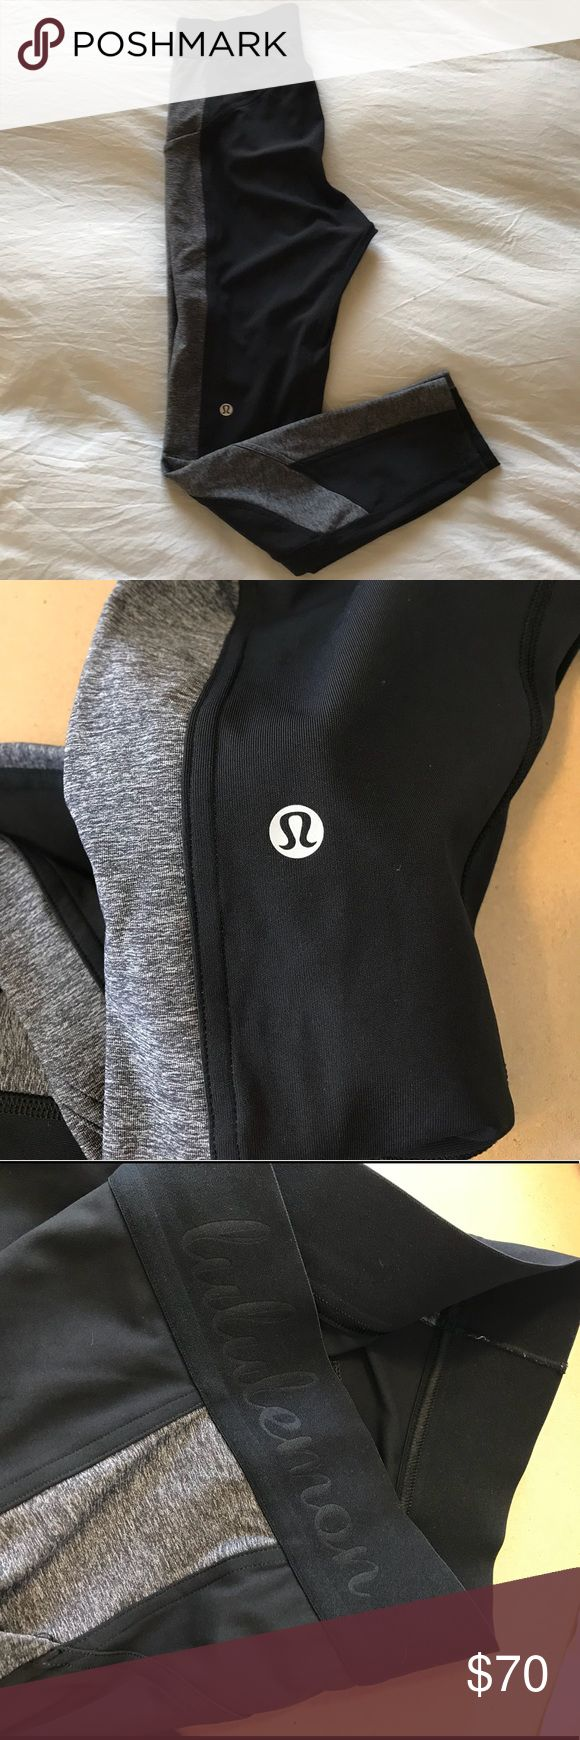 Lululemon Box It Out Tight (First Release) Super flattering and comfortable tights from our favorite workout brand! Love them but they are too big now and can't fit my iPhone 7. Worn a handful of times. No signs of wear or pilling. Washed on delicate and hung to dry.   ***site photos used to show design and fit. Selling black with gray sides that are no longer online. lululemon athletica Pants Leggings